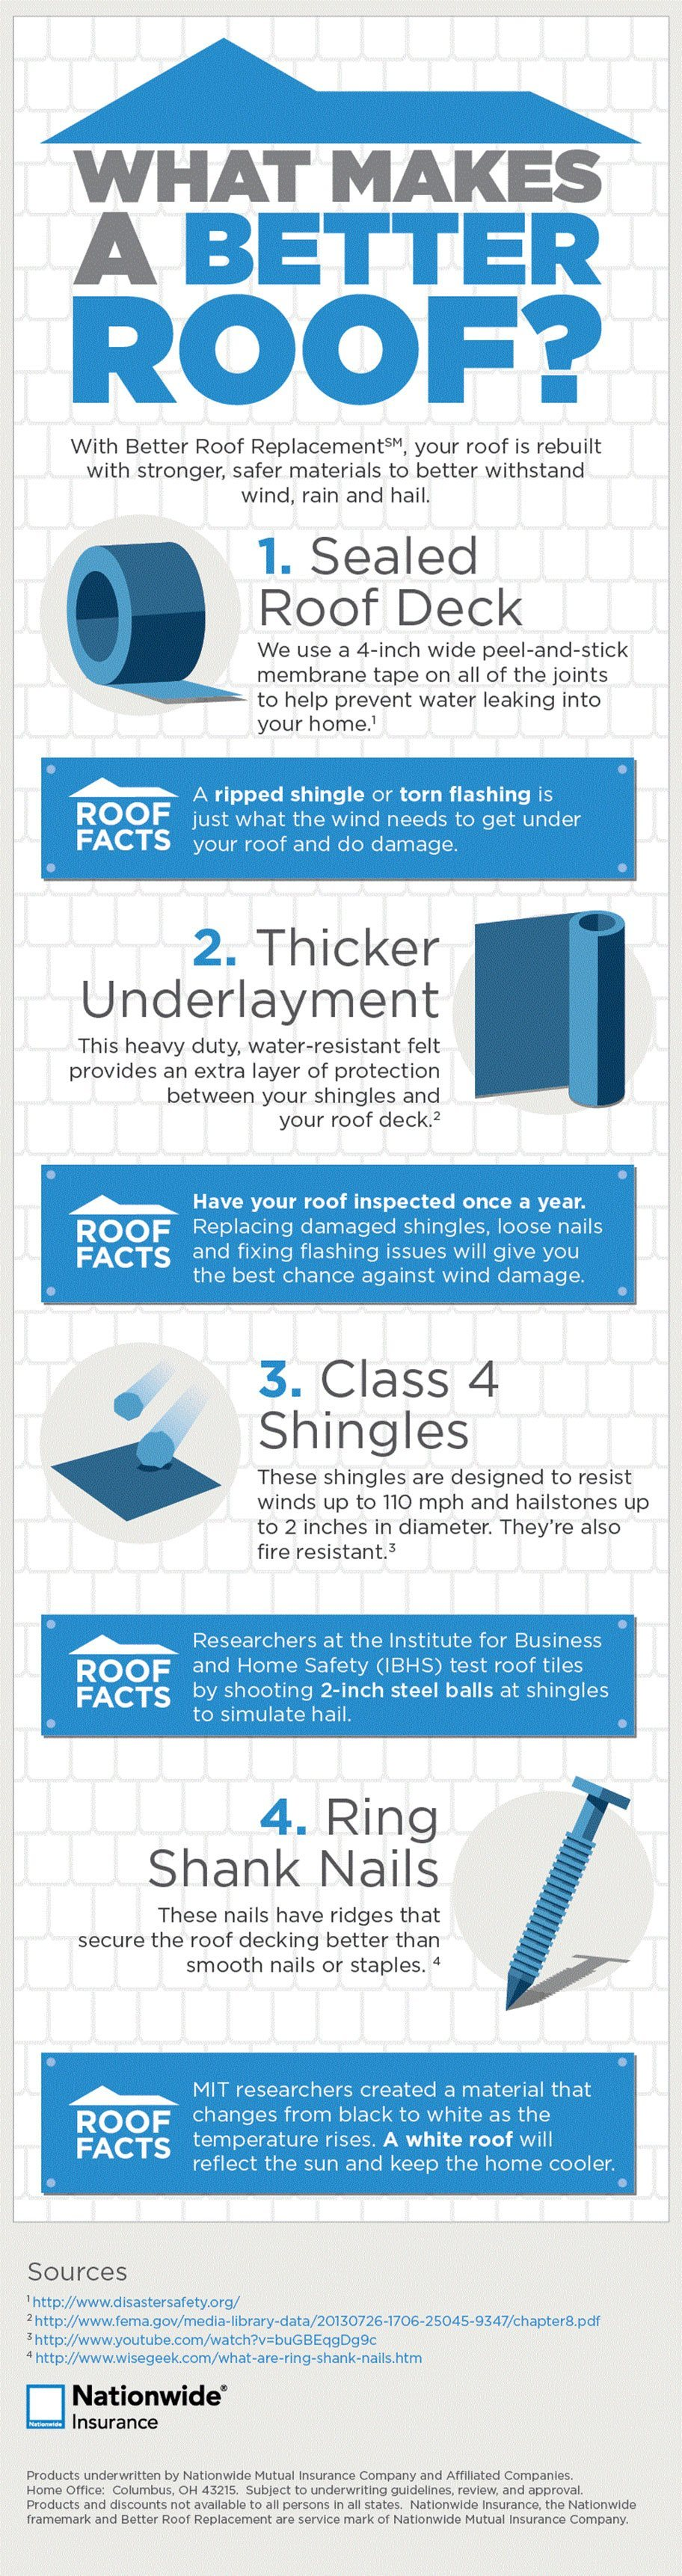 what makes a better roof infographic